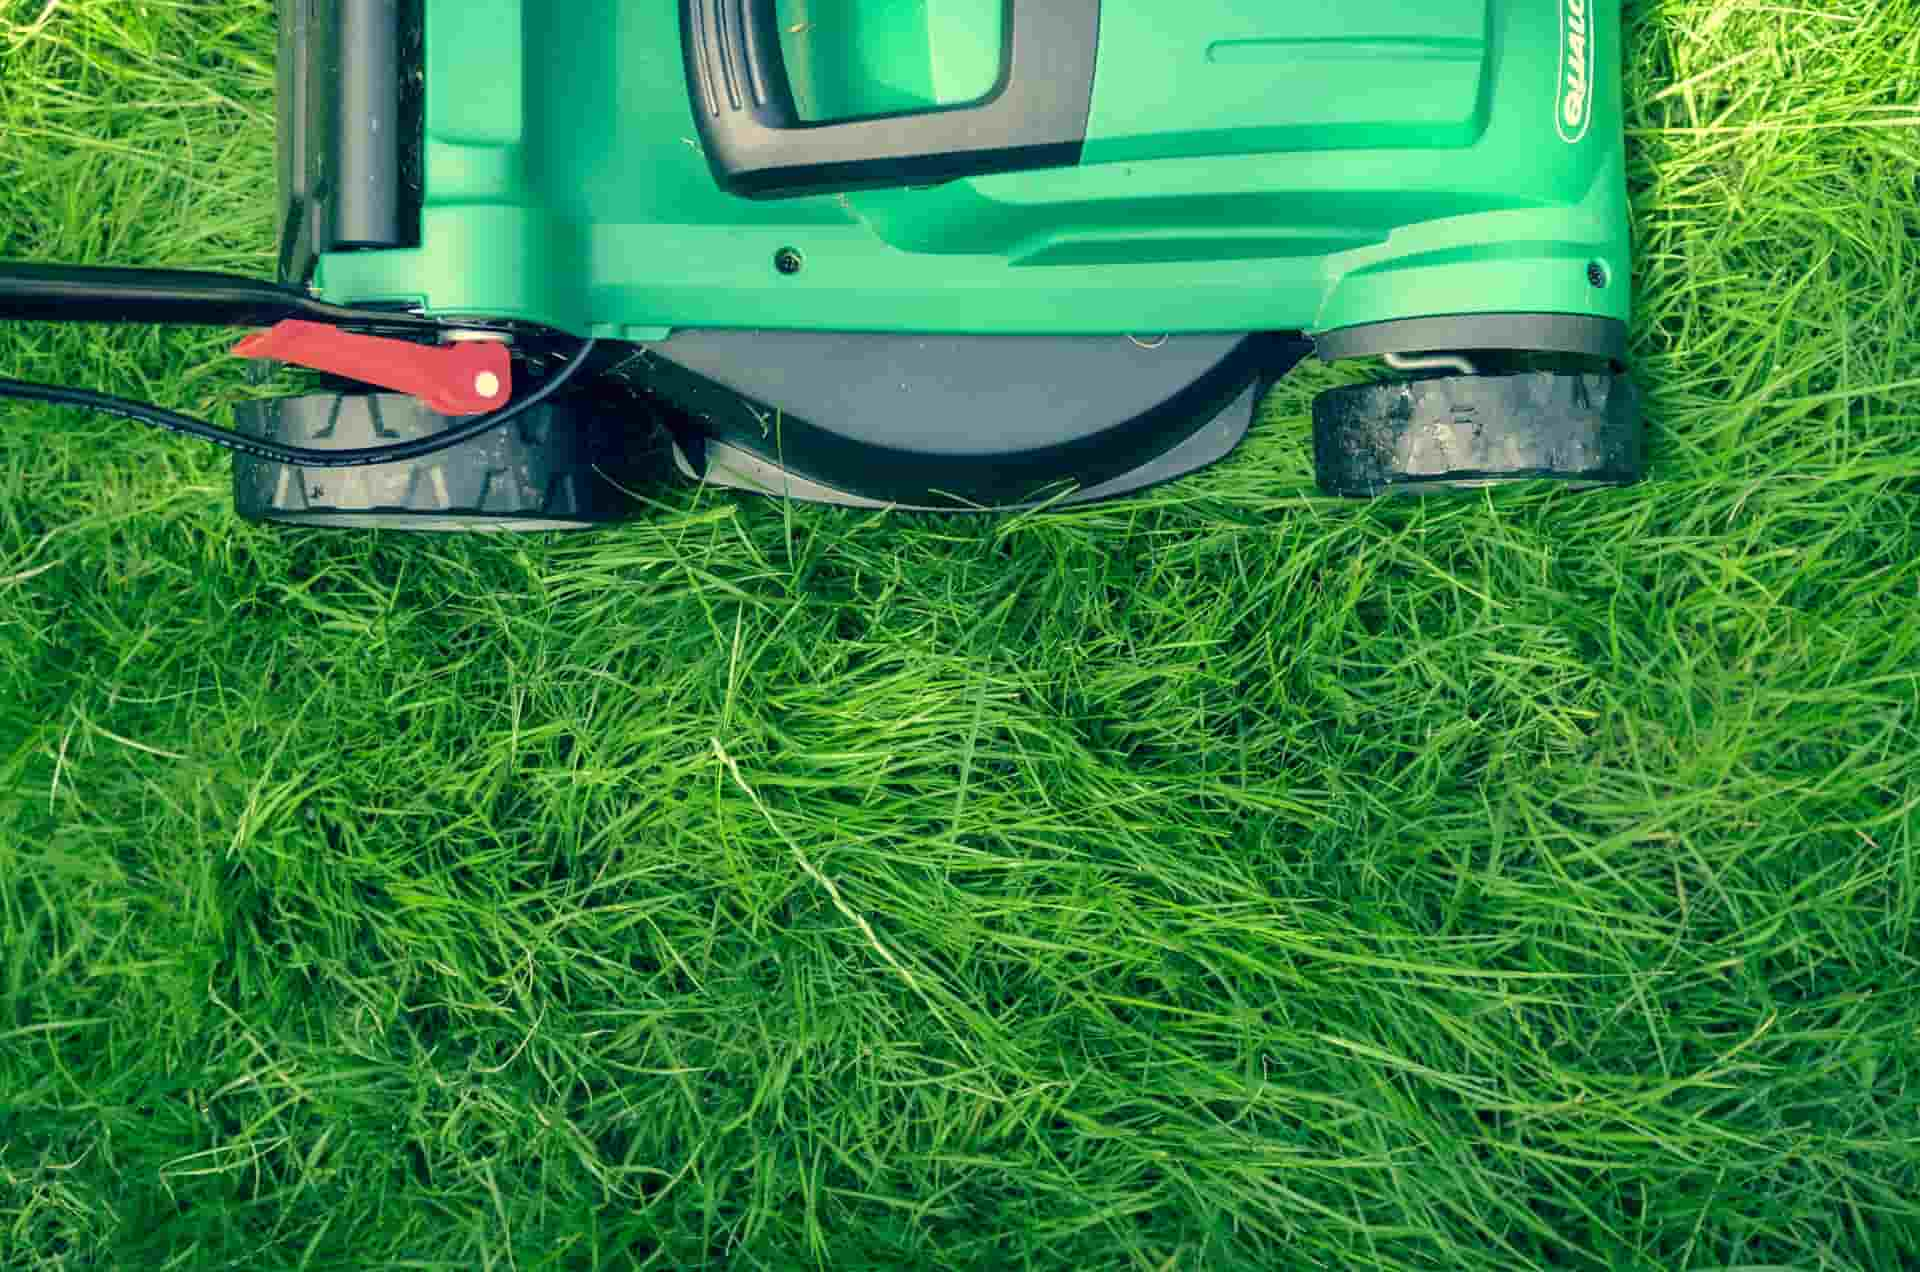 Lawn mowing can lead to many jokes based on your lawn or garden.